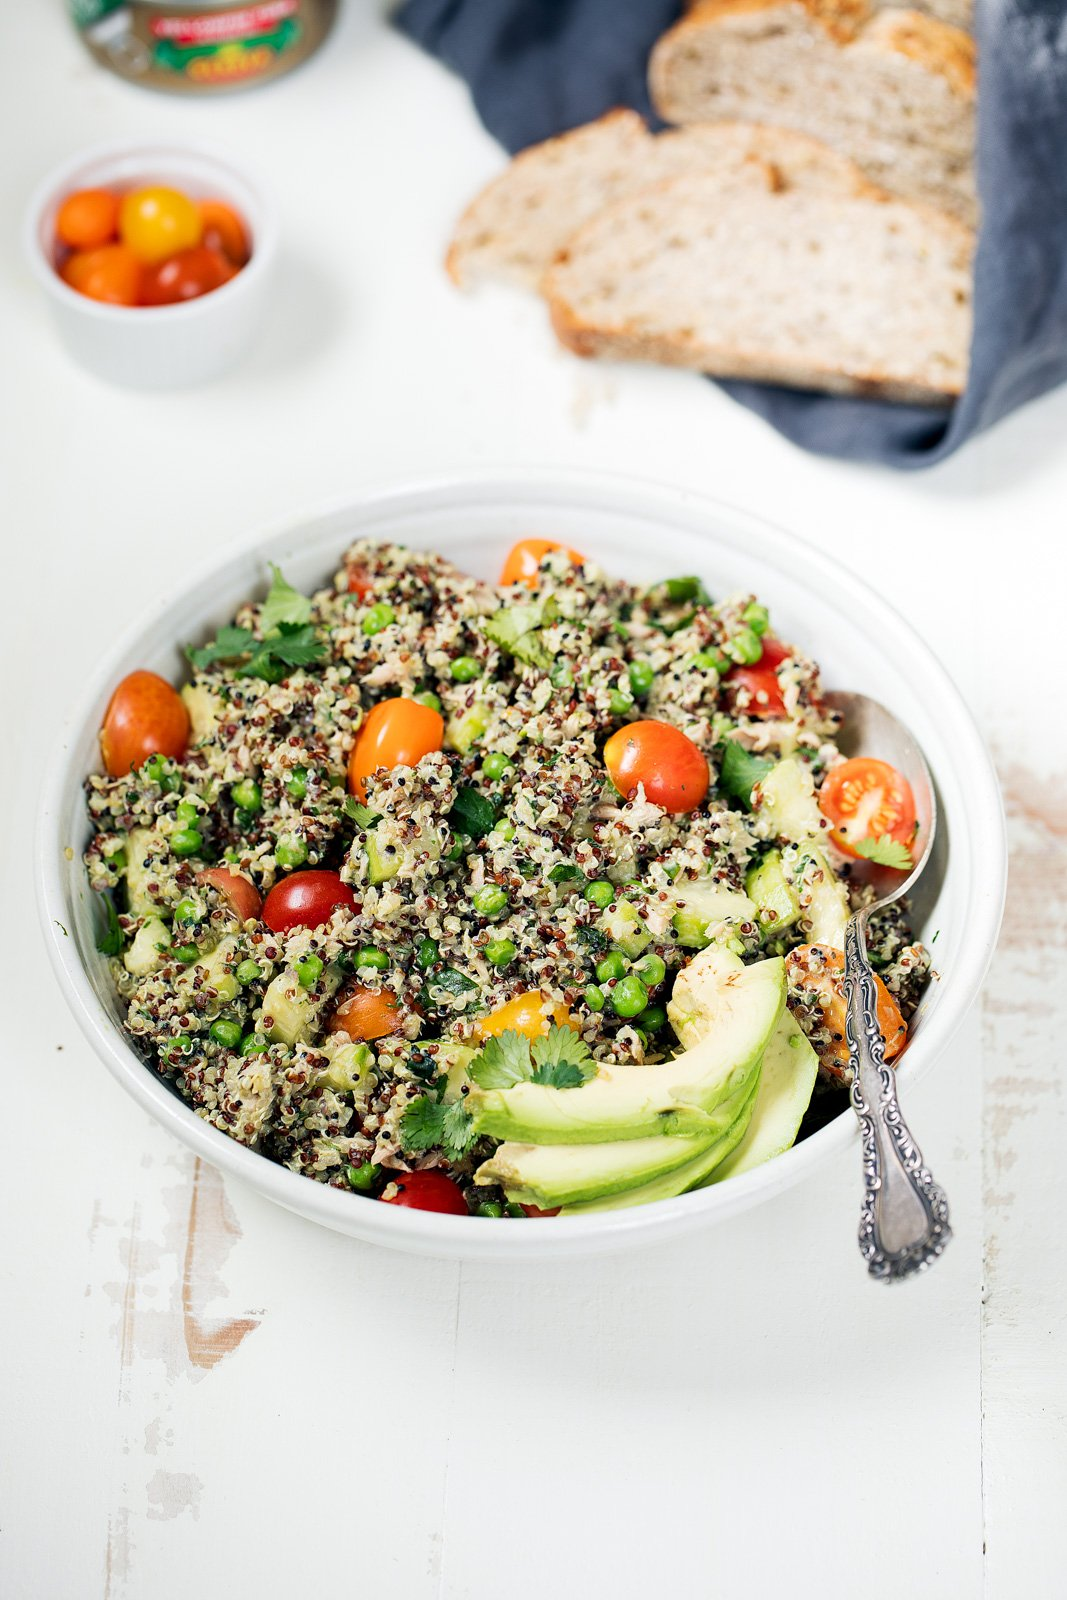 Tuna quinoa salad packed with protein, fresh spring veggies and a green goddess avocado dressing. Delicious and so easy to make!